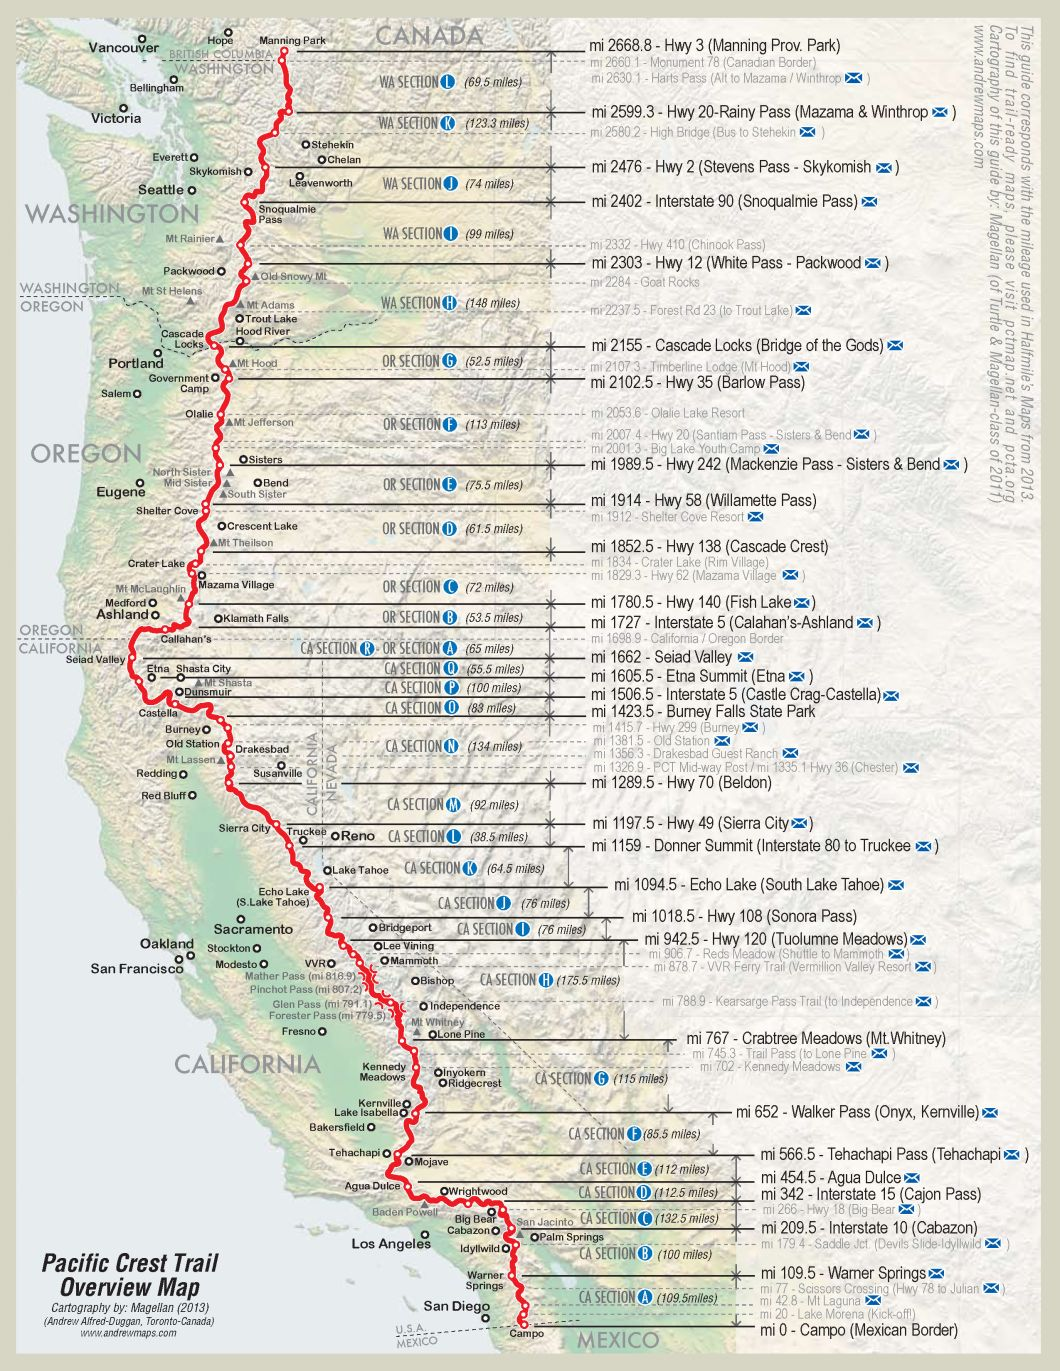 pct_overview